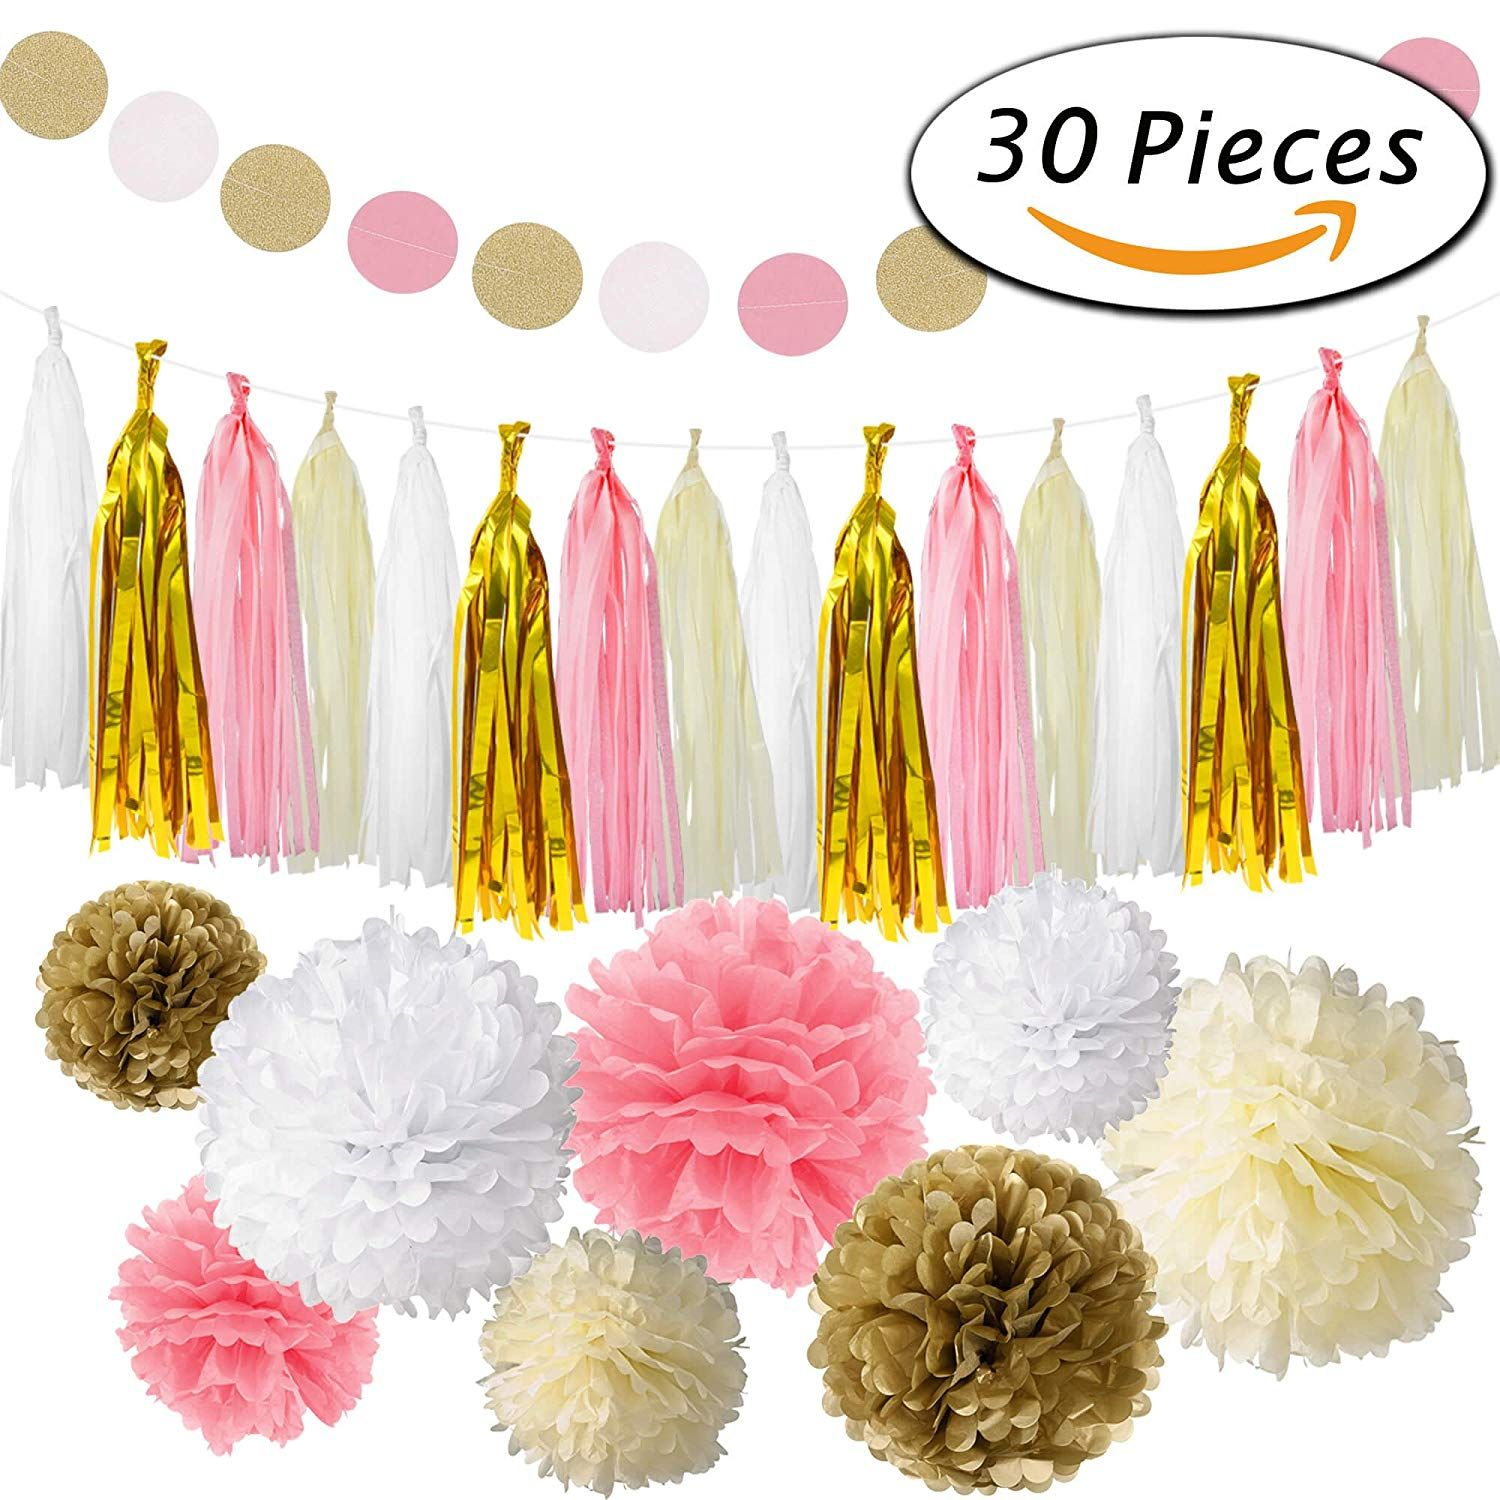 Paxcoo Pink and Gold Party Decorations with Tissue Pom Poms Paper Lanterns Tassel Garland for Birthday Baby Shower Girls 1st Party